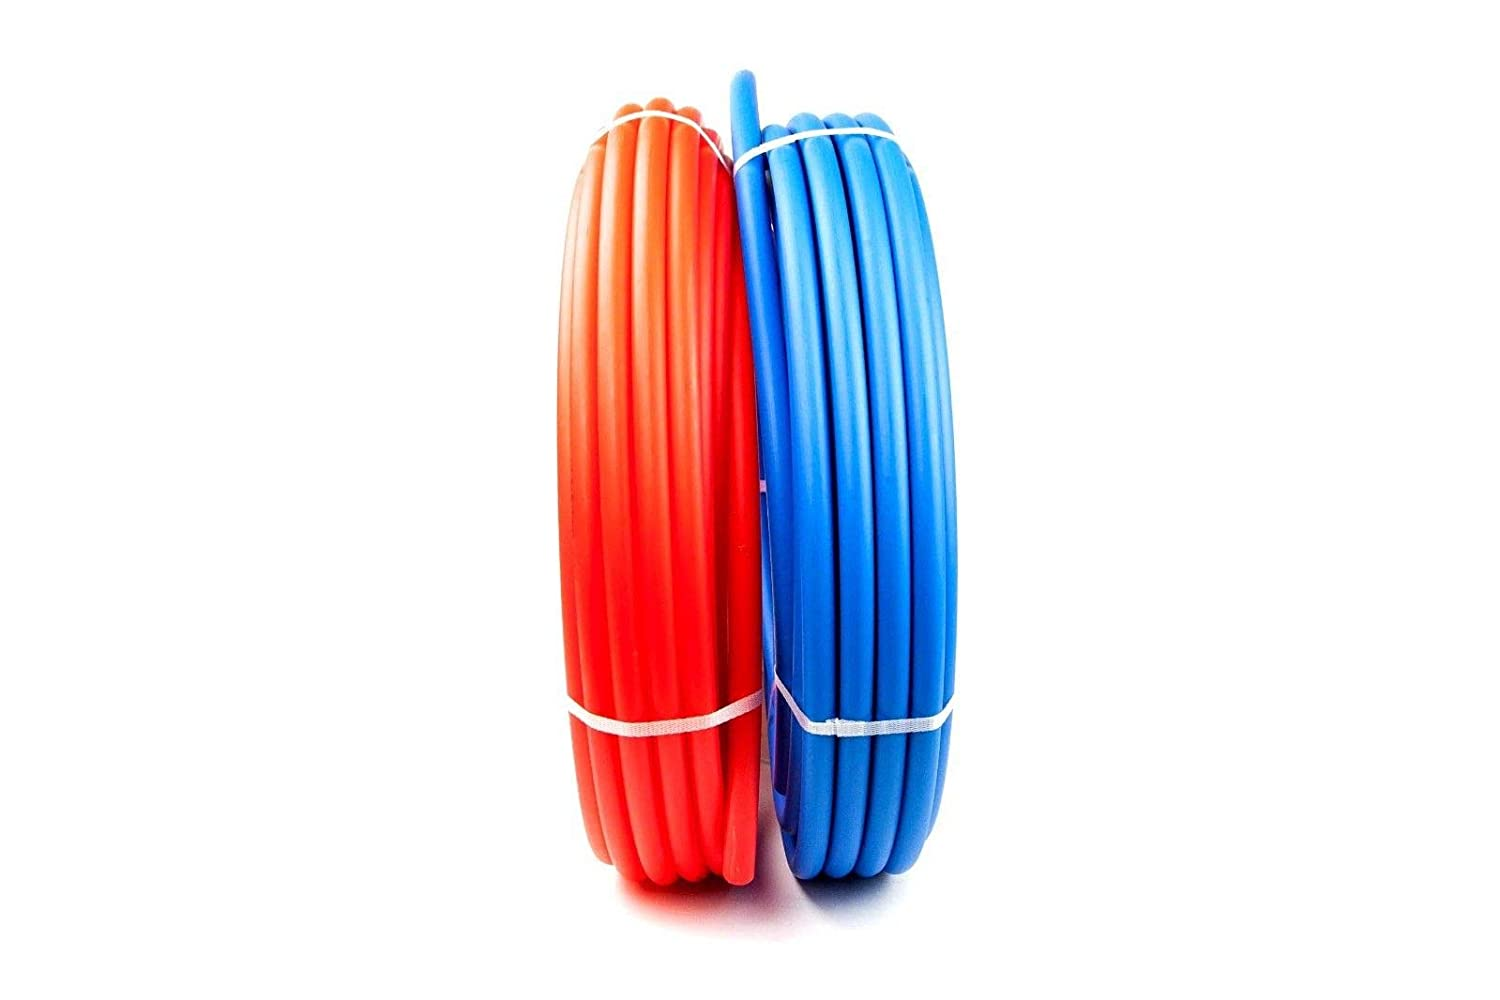 PEX Tubing B Pipe 1//2 300 Feet Red 300 Blue Water Polyethylene Flexible Pipes Non Oxygen Barrier Potable Tubes Hot Cold PEX-B Expandable Plastic 1//2 Inch Crimp Hose Free Cutting Crimping Tool